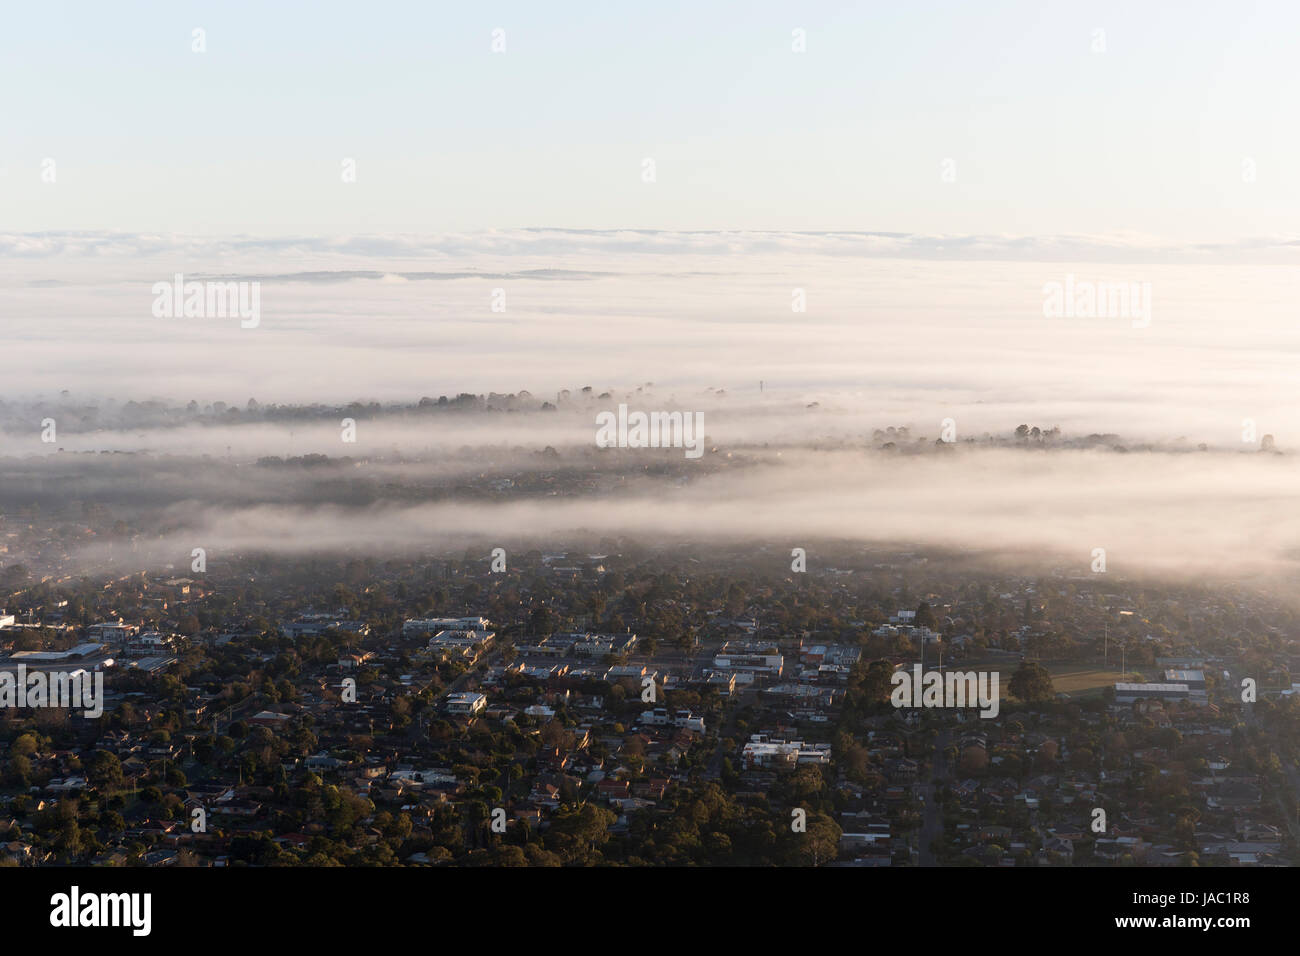 Fogs in the urban sky. - Stock Image